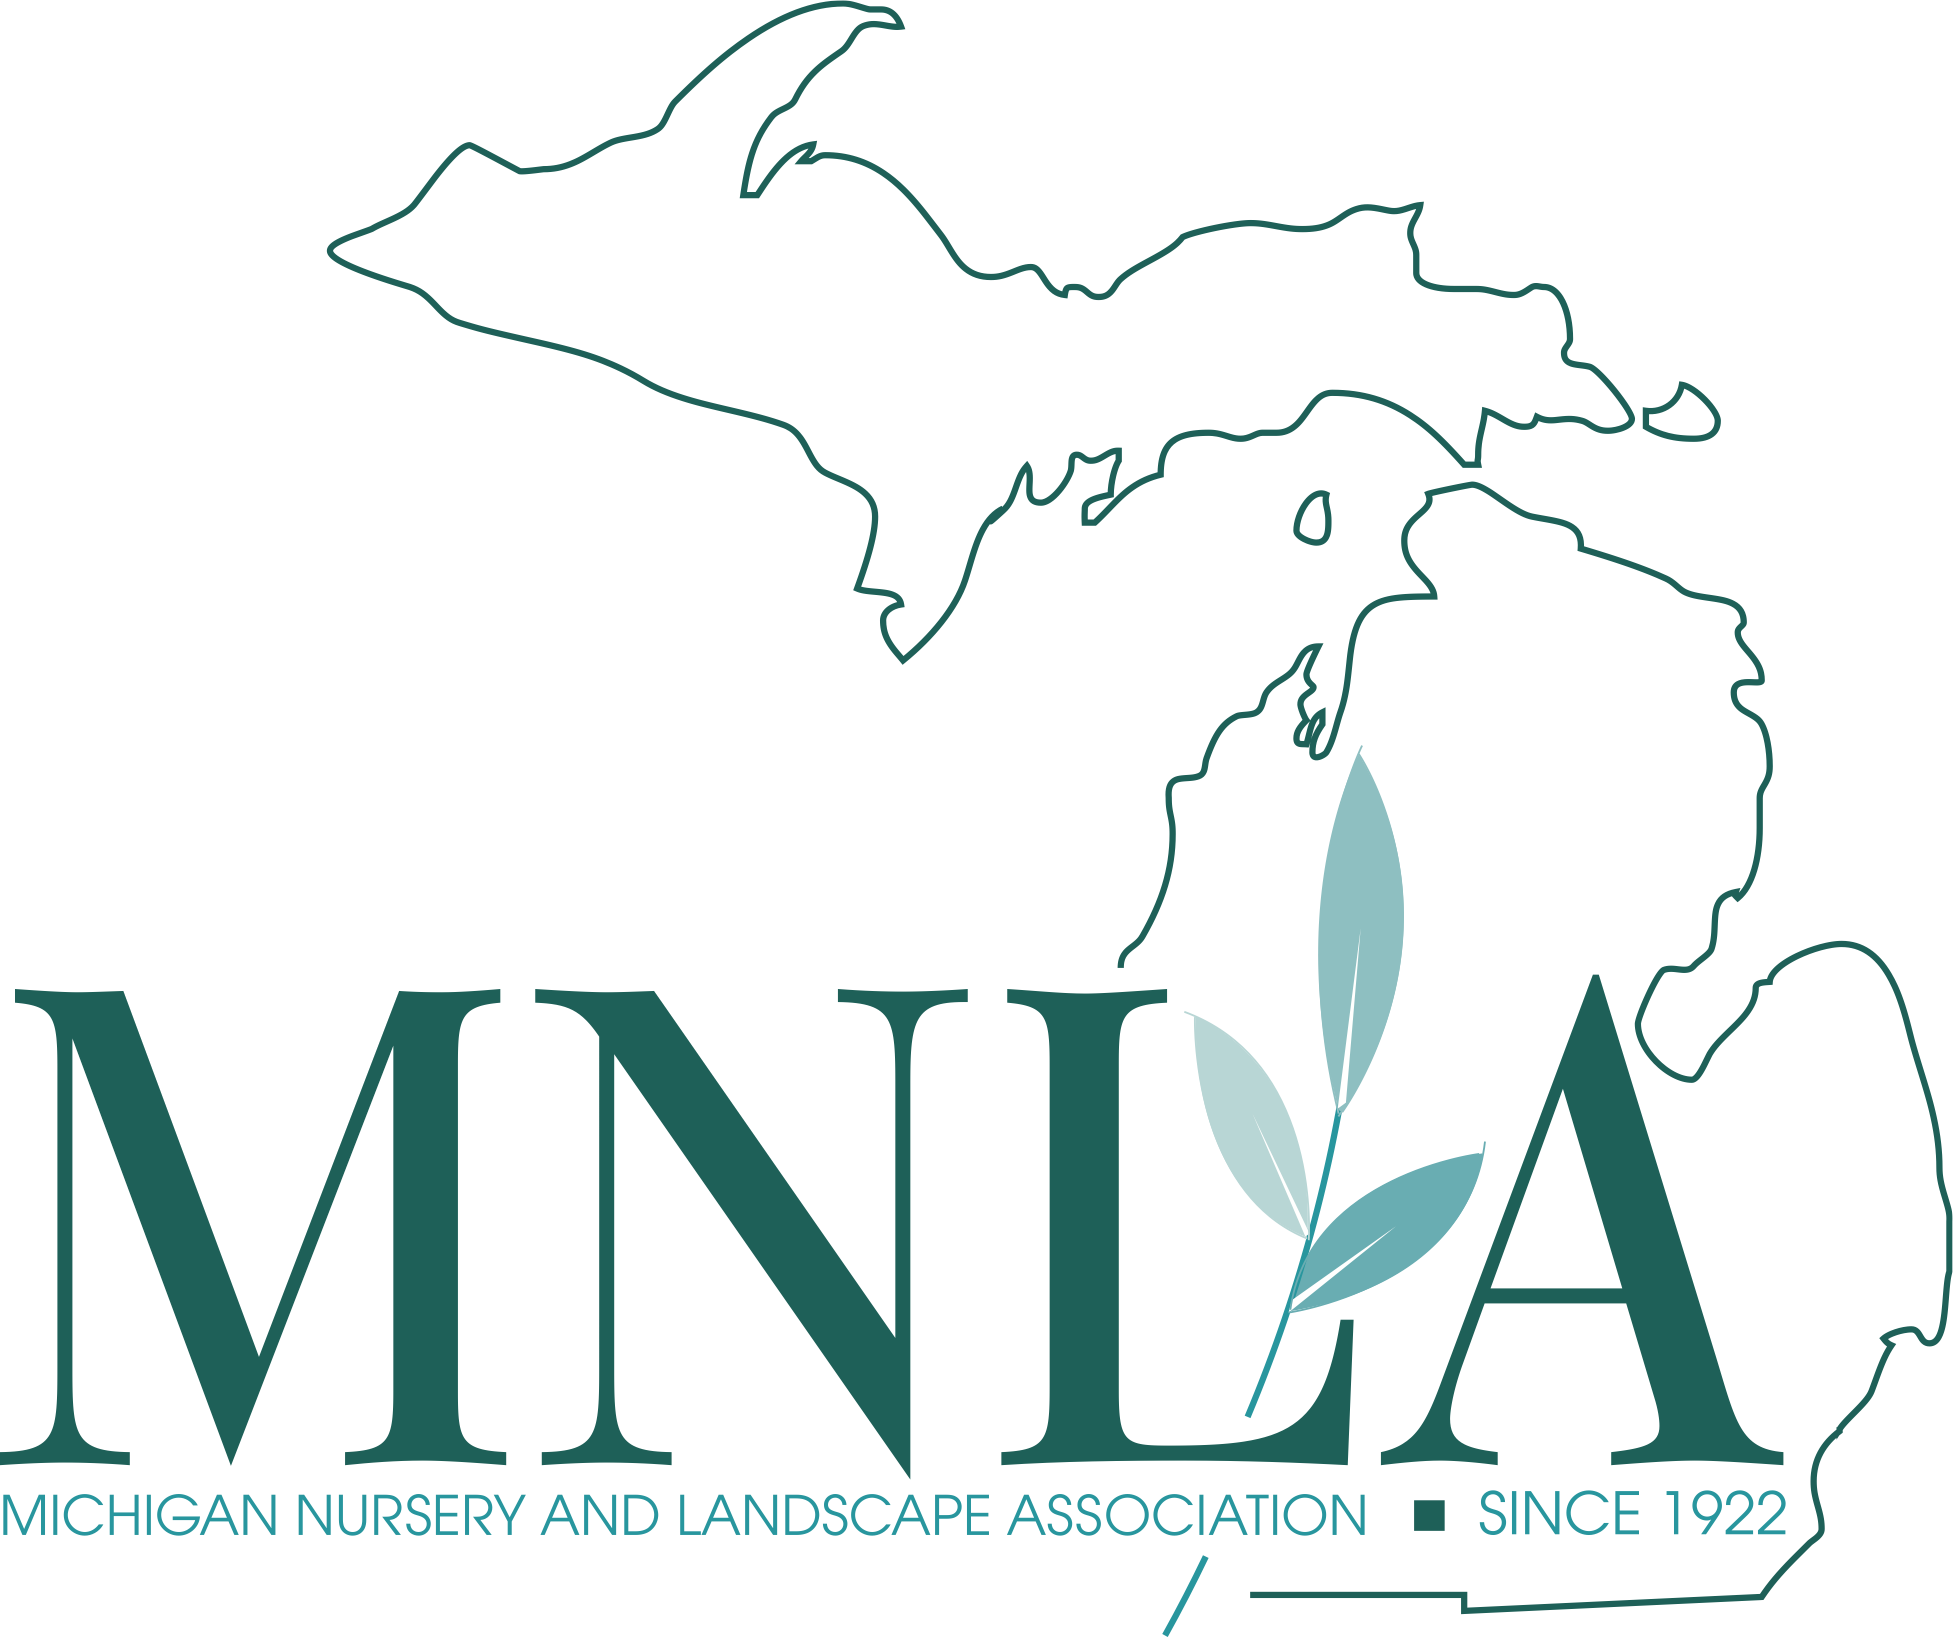 E-Training by the Michigan Nursery and Landscape Association